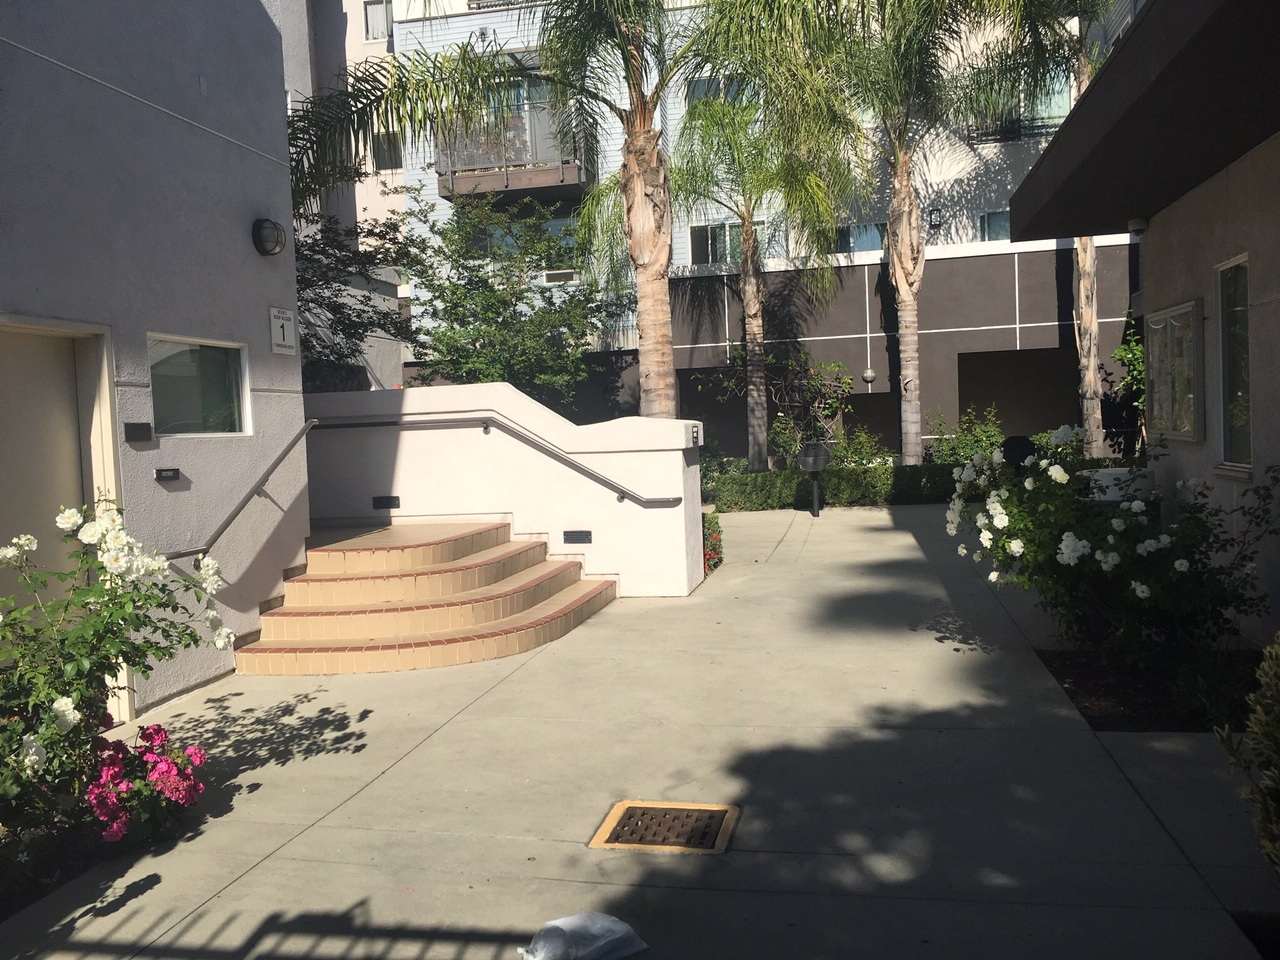 View of a well maintained courtyard, four steps up with handrails on each side.